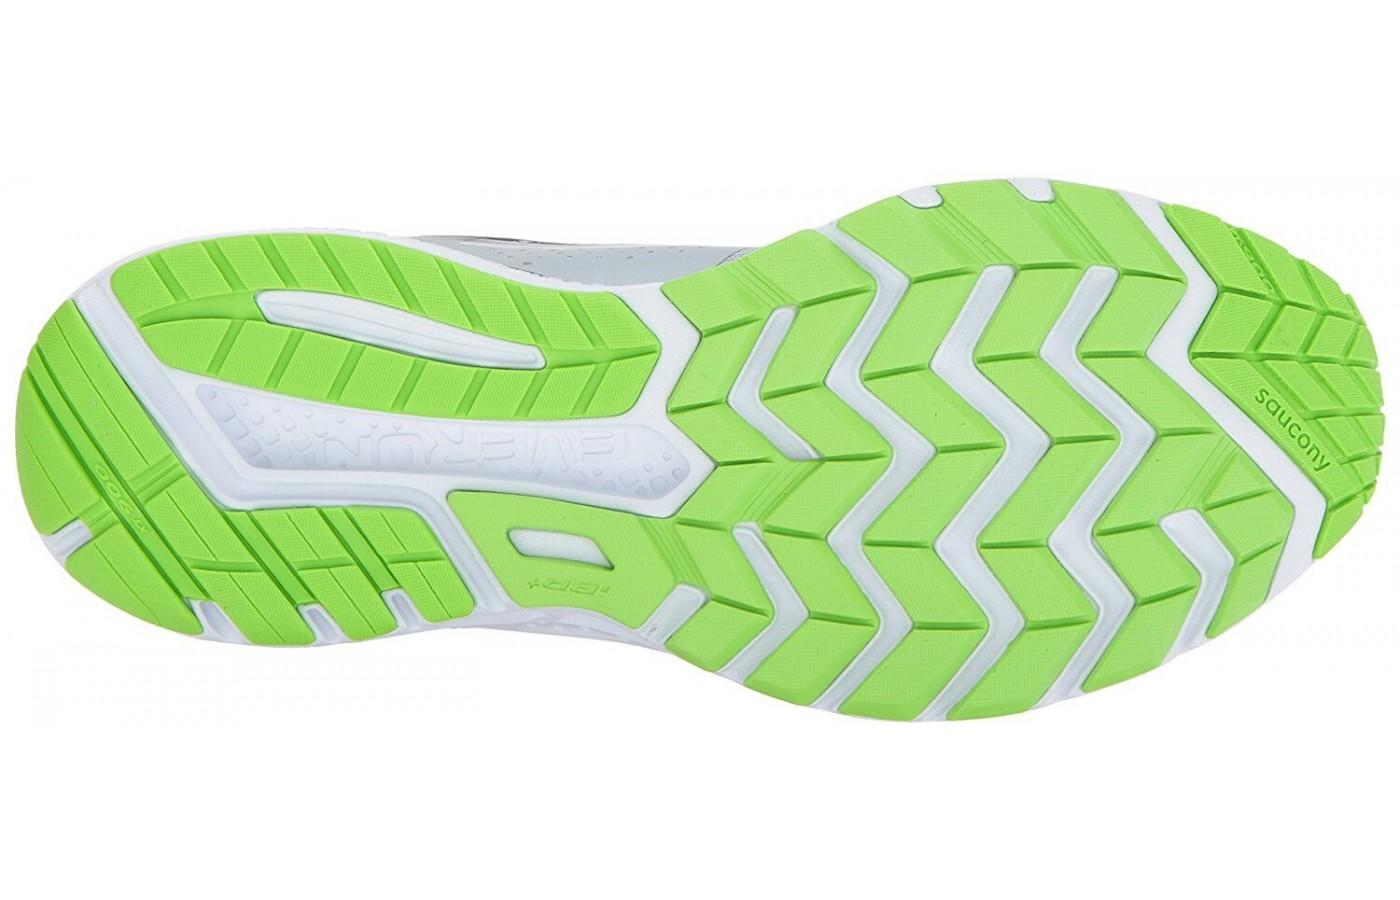 the outsole provides solid traction on the road